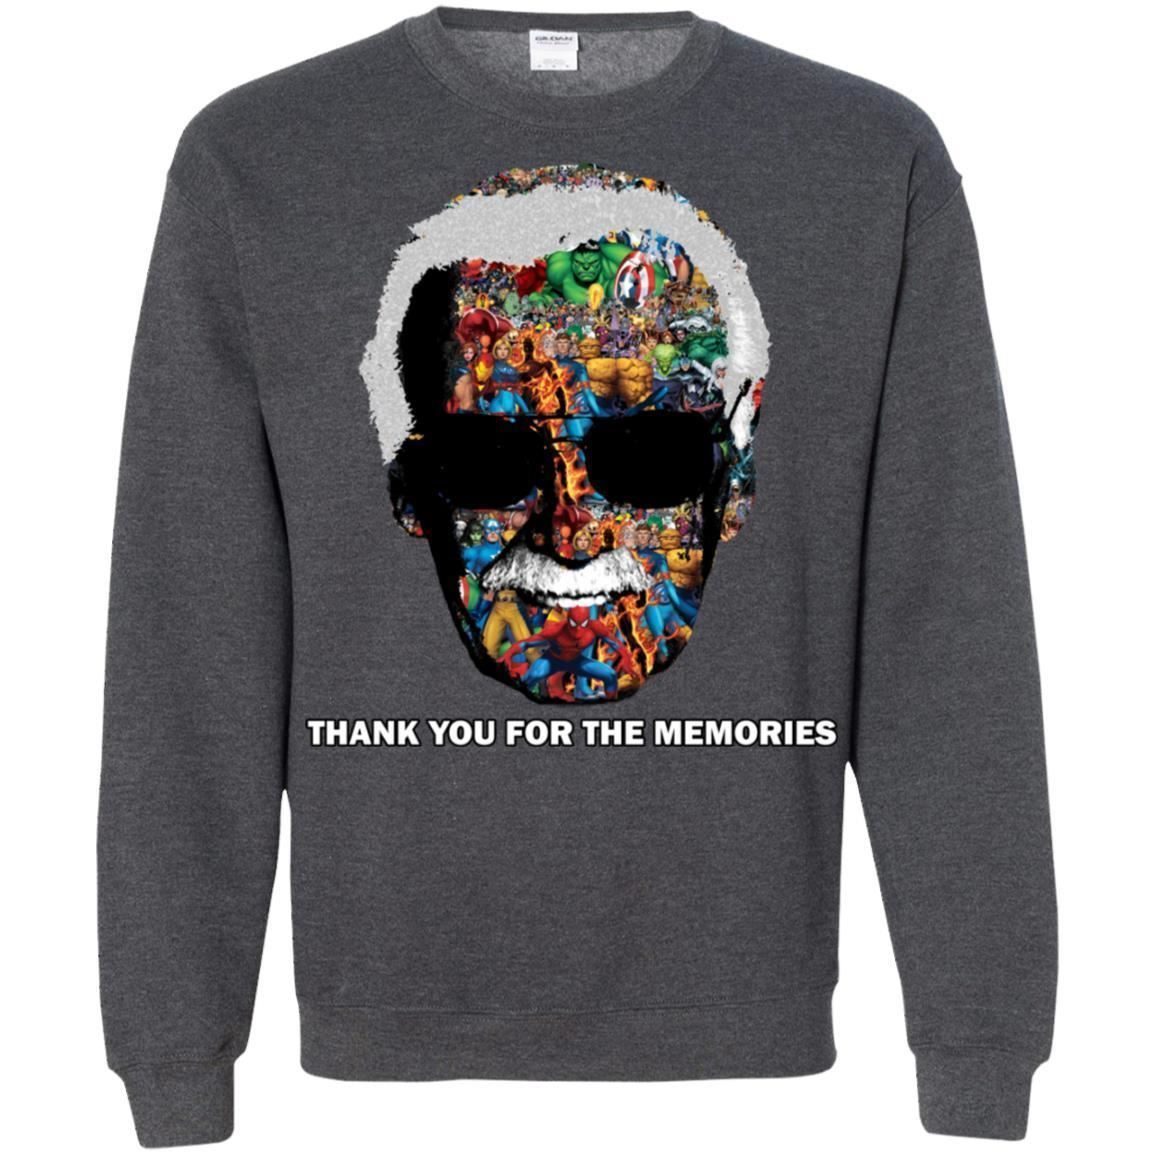 Thank You For The Memories Tee Shirt  - Inspired By Stan Lee Sweatshirt - Super image 9